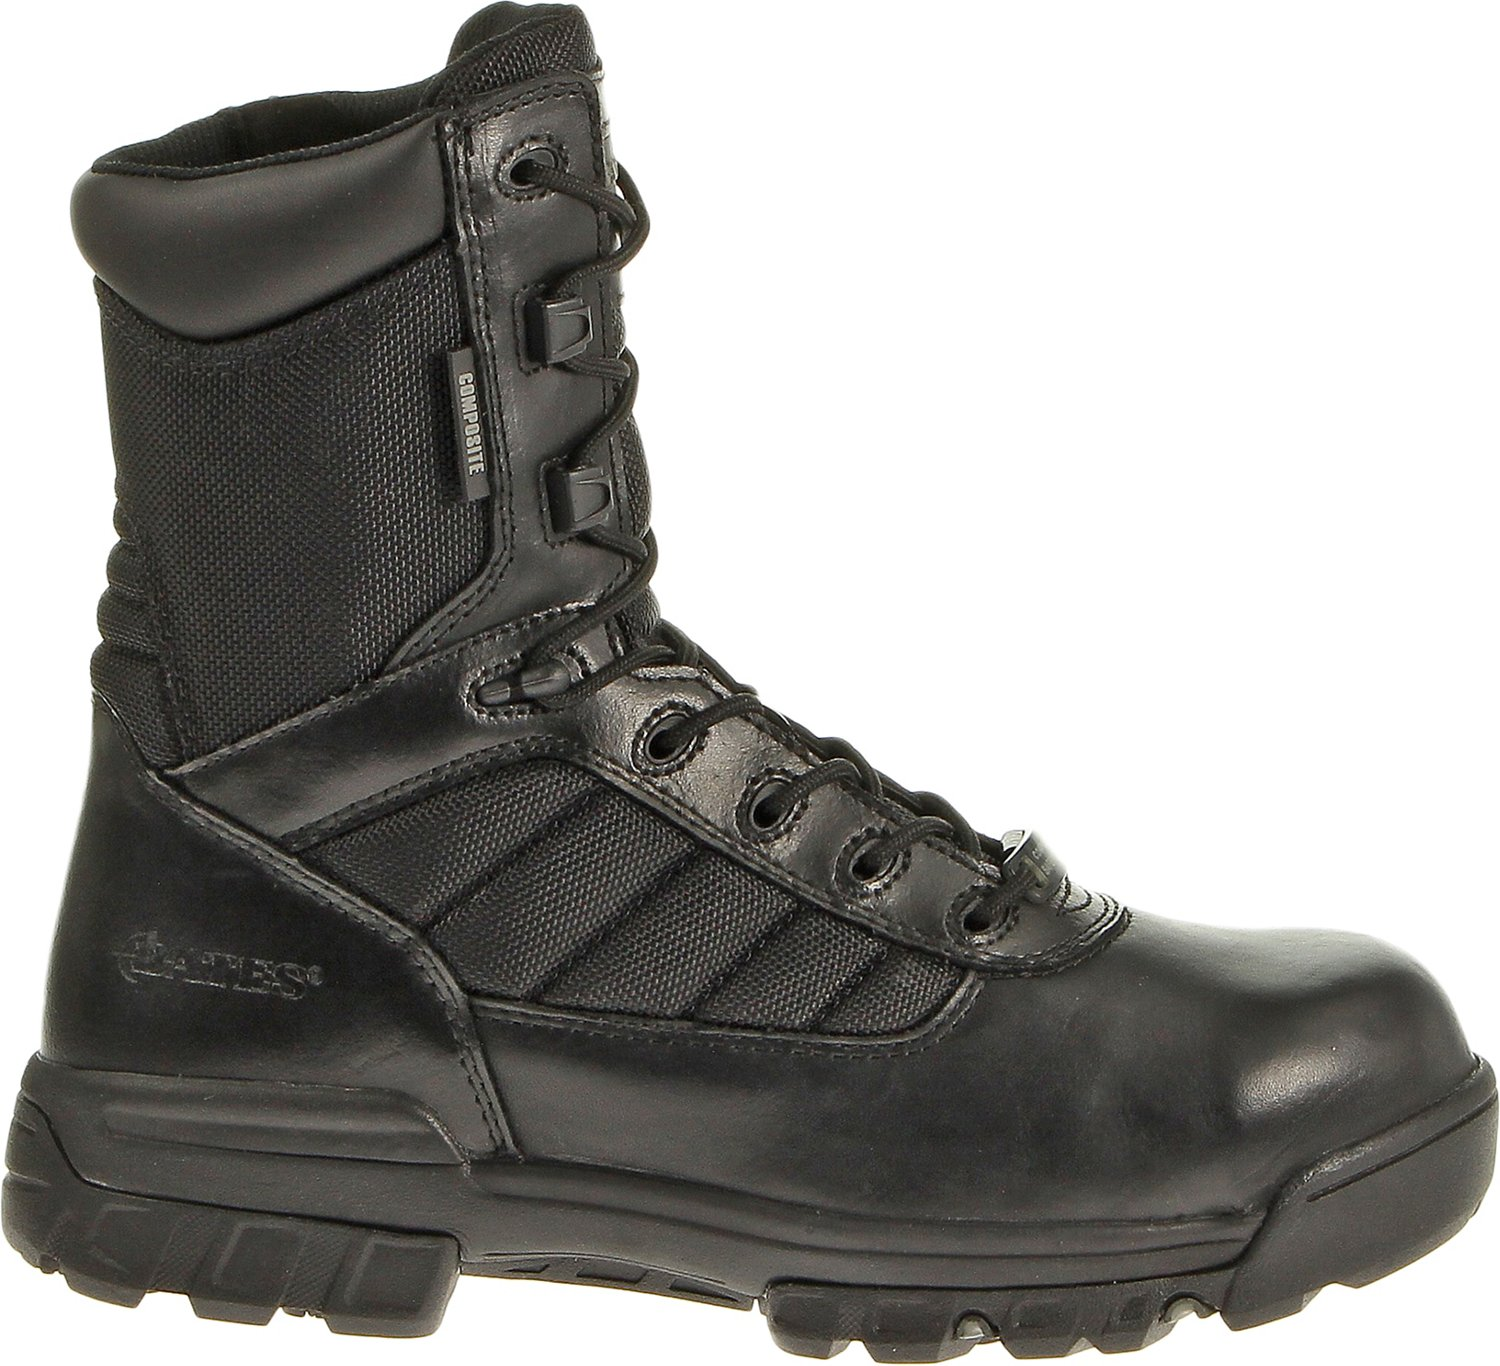 2ea3ebc74 Display product reviews for Bates Men's 8 in Sport Composite Toe Side-Zip  Tactical Boots